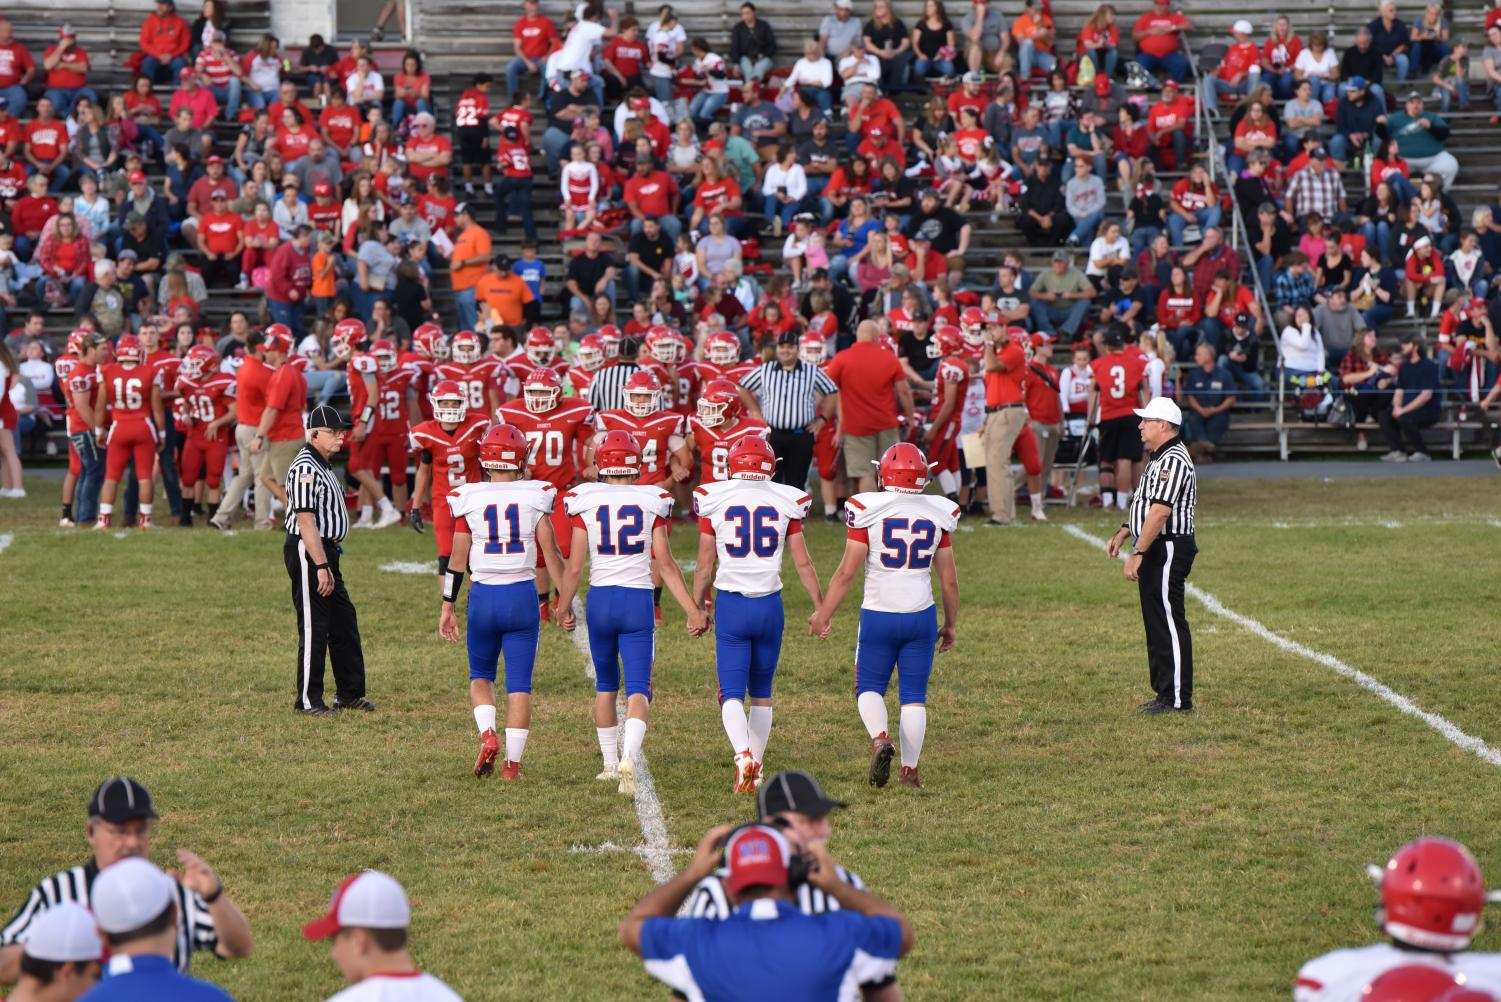 The West Branch captains walk onto the field for the captains meeting.